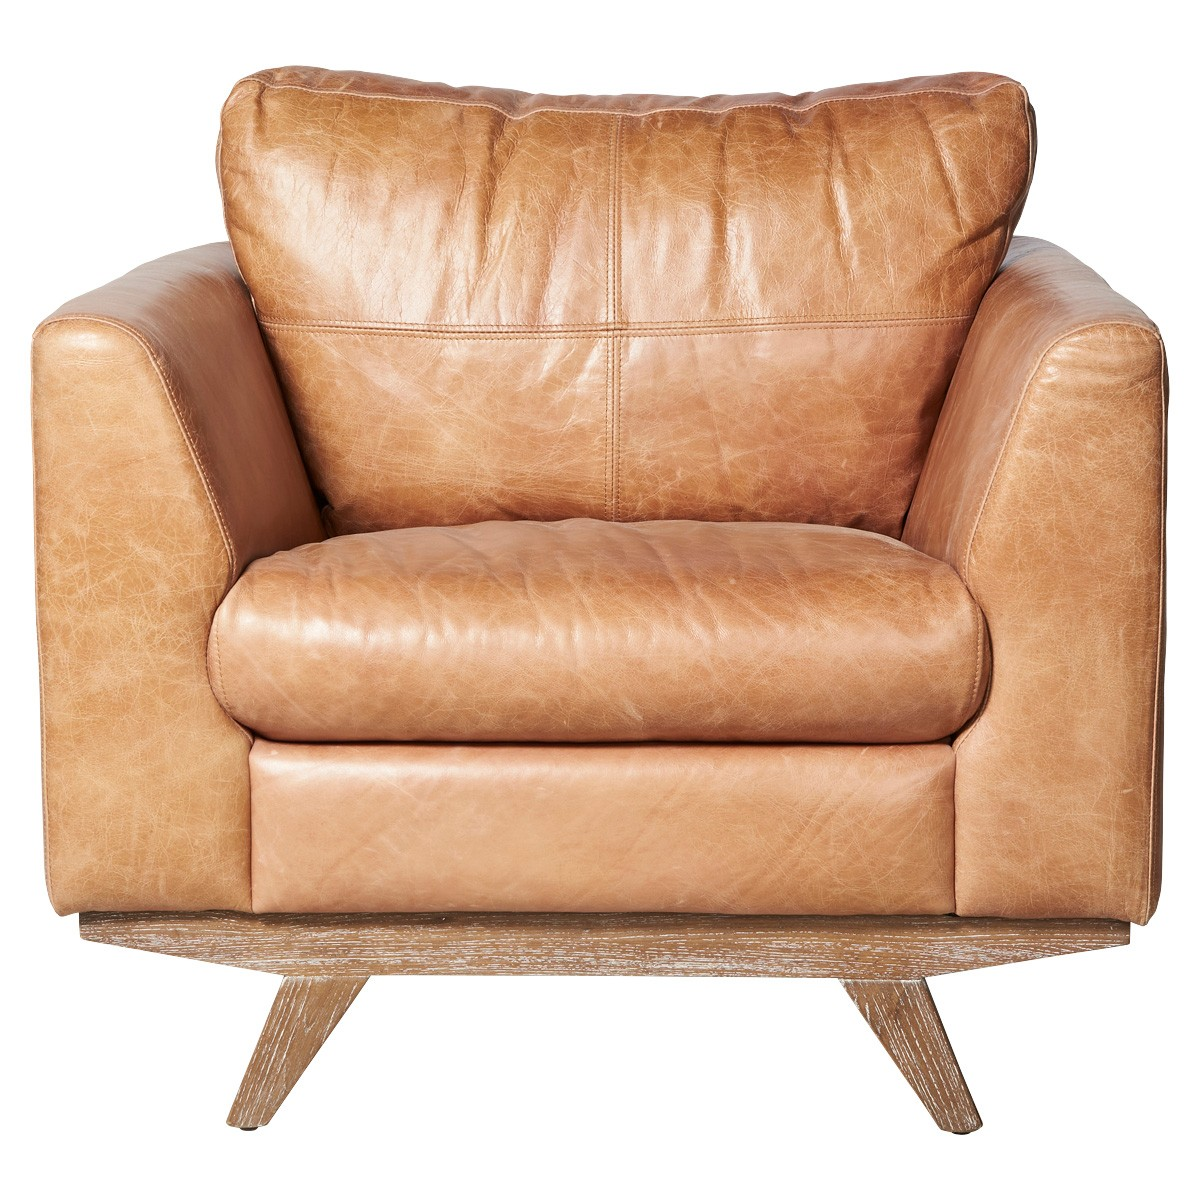 Milan Leather Armchair, Tan